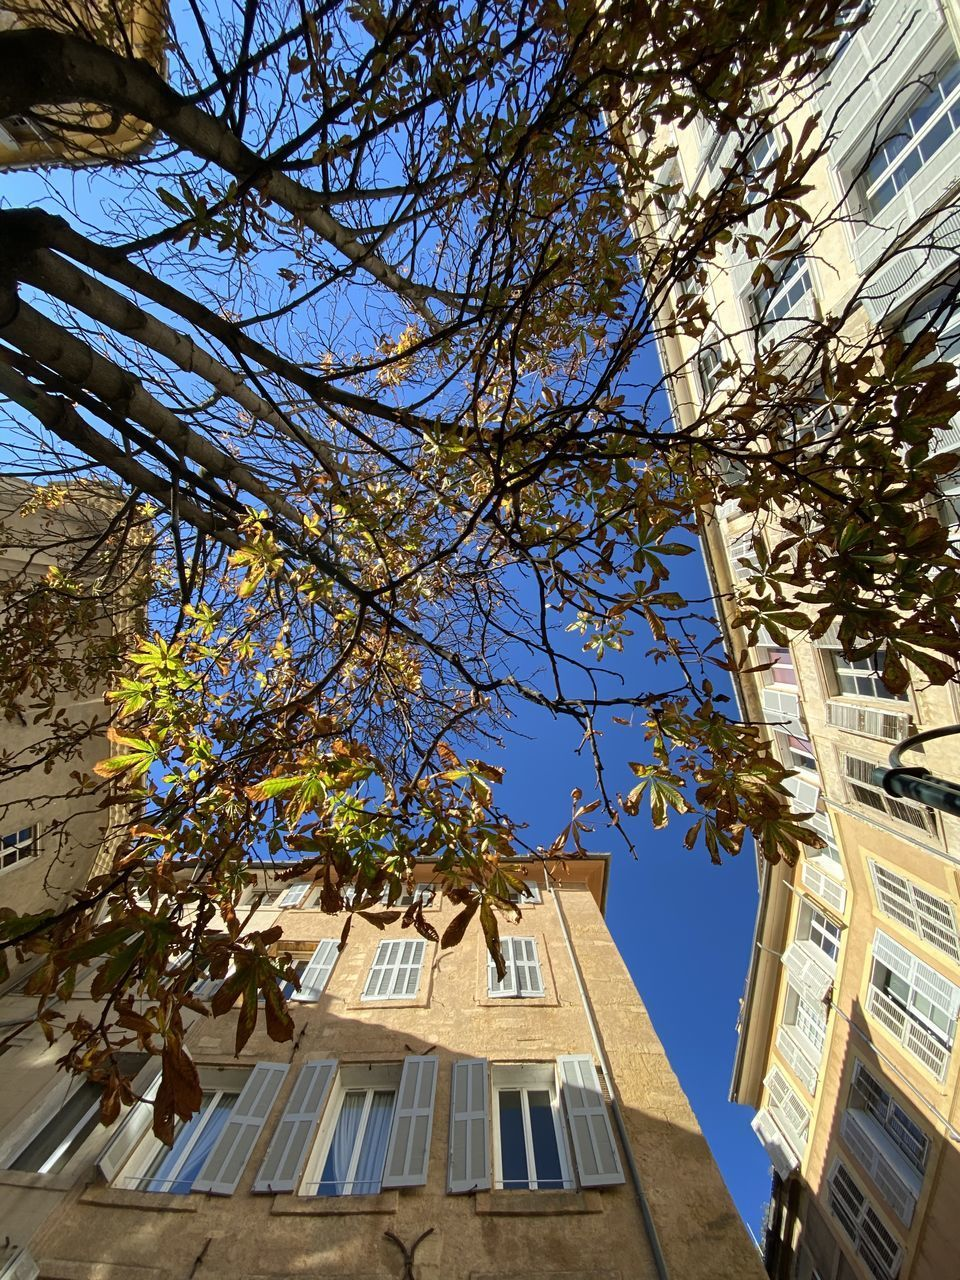 building exterior, architecture, tree, built structure, plant, sky, low angle view, nature, building, branch, growth, no people, day, sunlight, city, clear sky, outdoors, blue, residential district, window, directly below